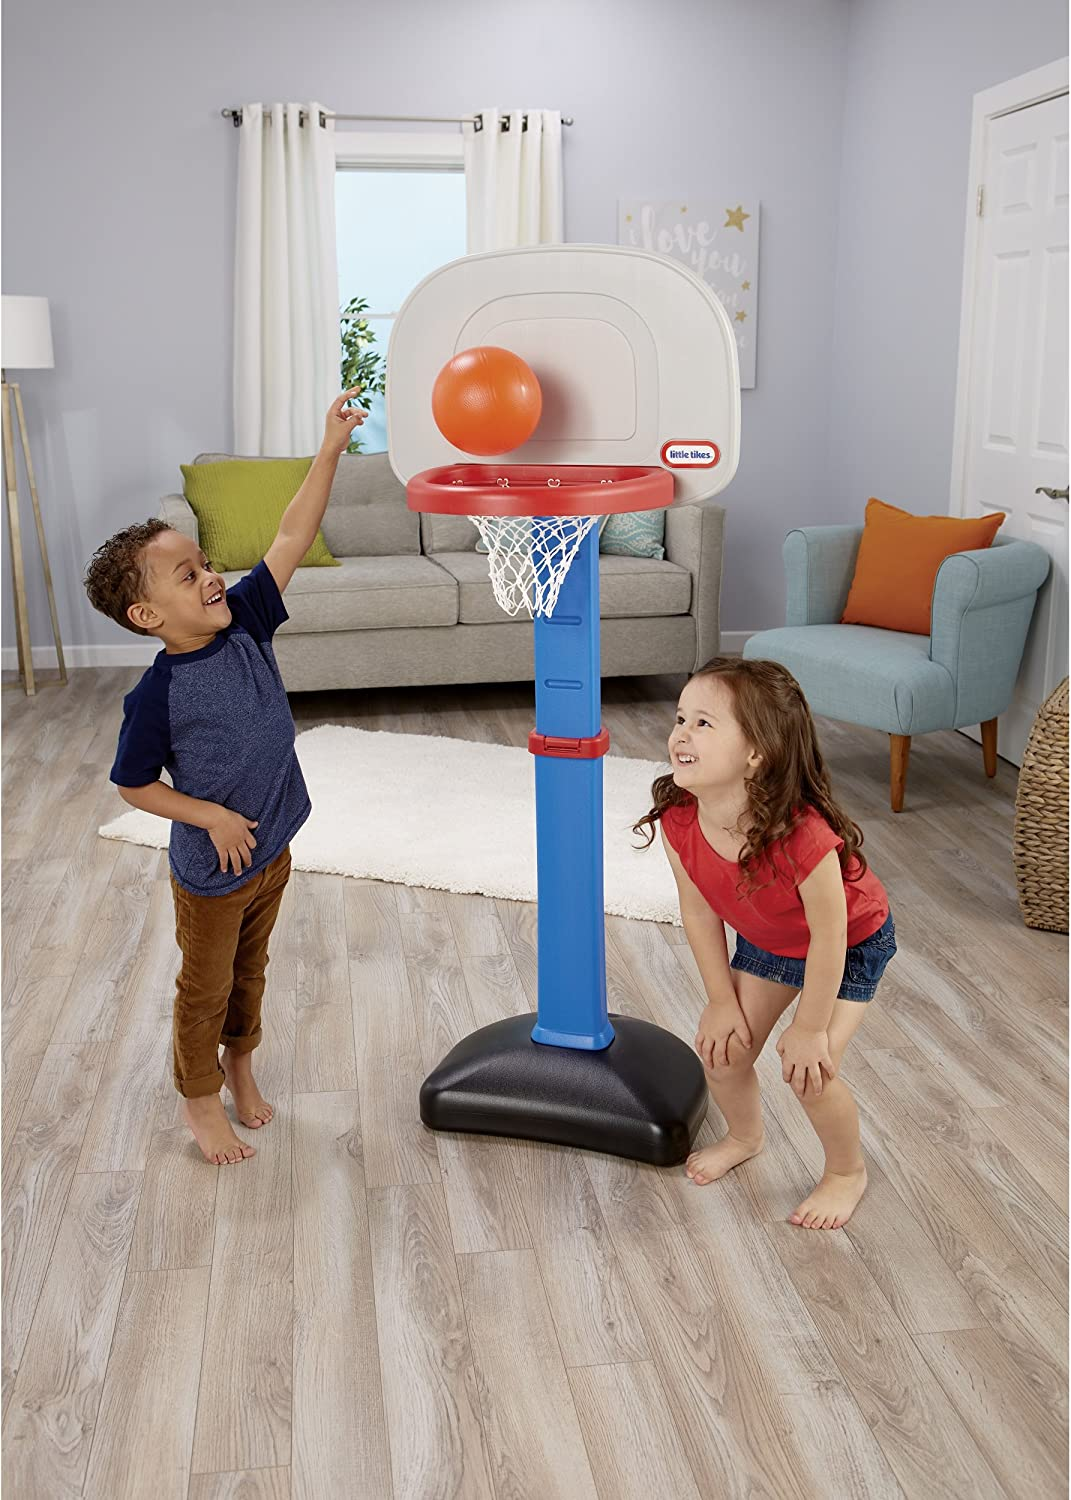 Best Toddler Basketball Hoop For Your Kid In 2020 2